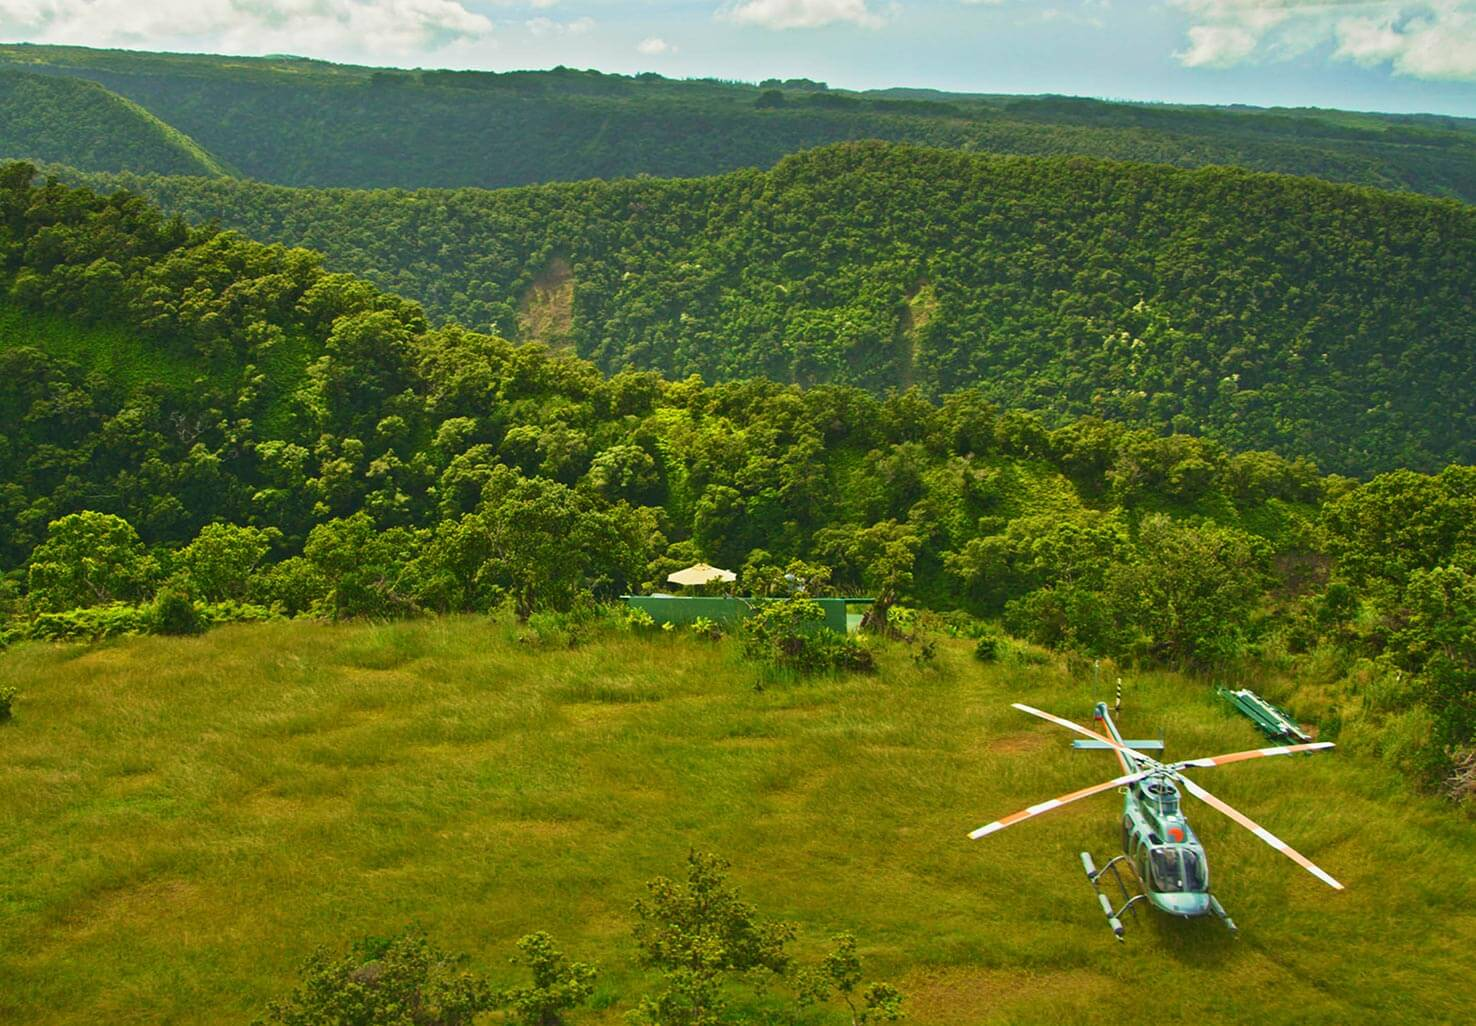 Helicopter Tour with lush greenery